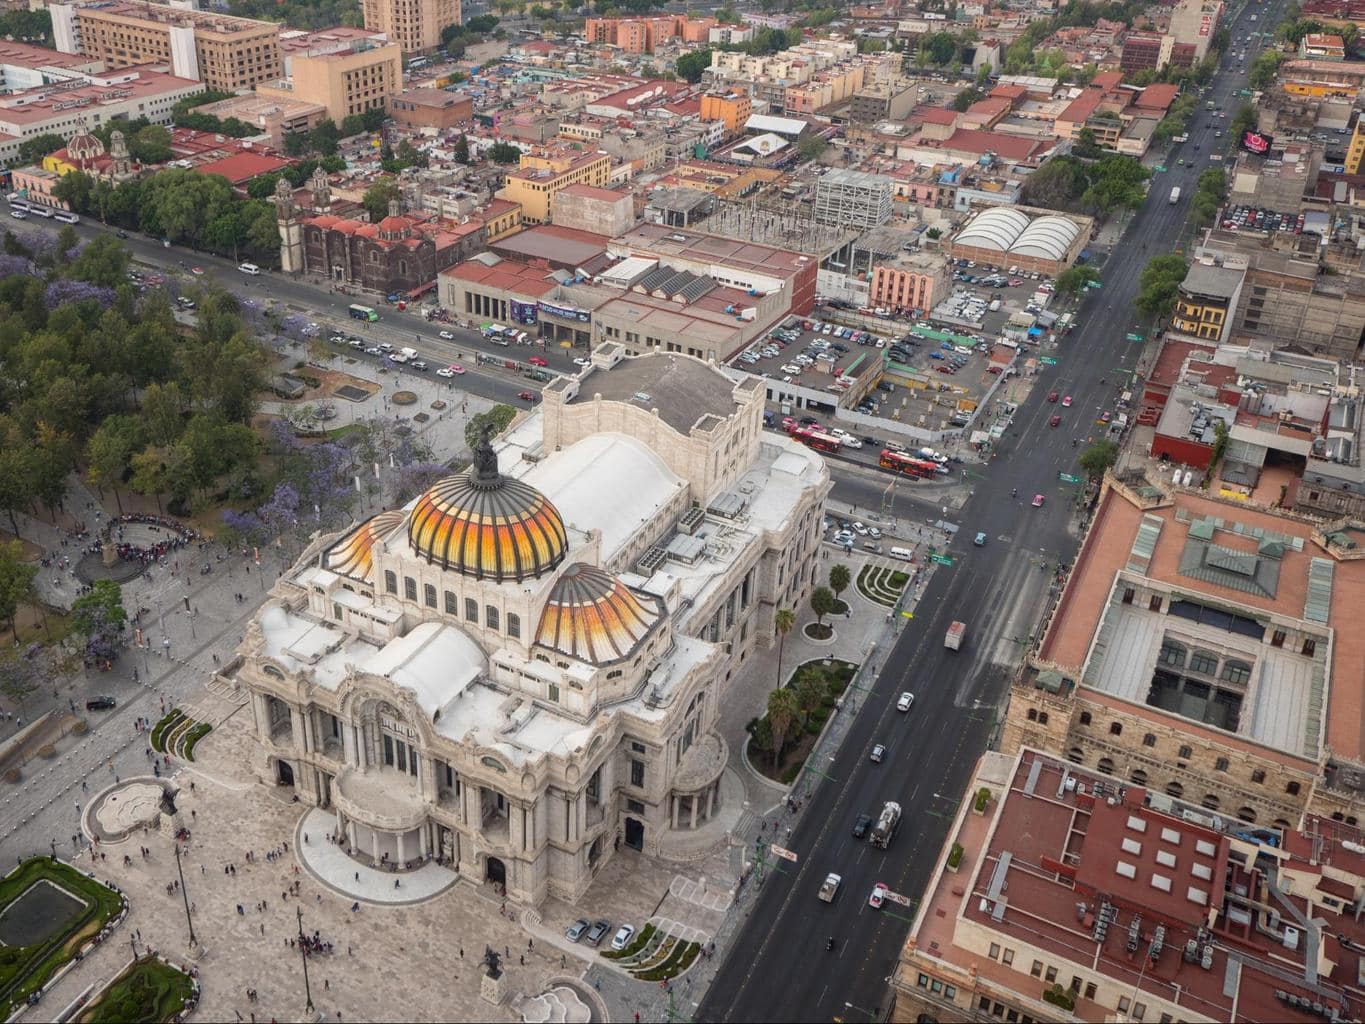 Palacio Bellas Artes seen from the top of Torre Latinoamericana